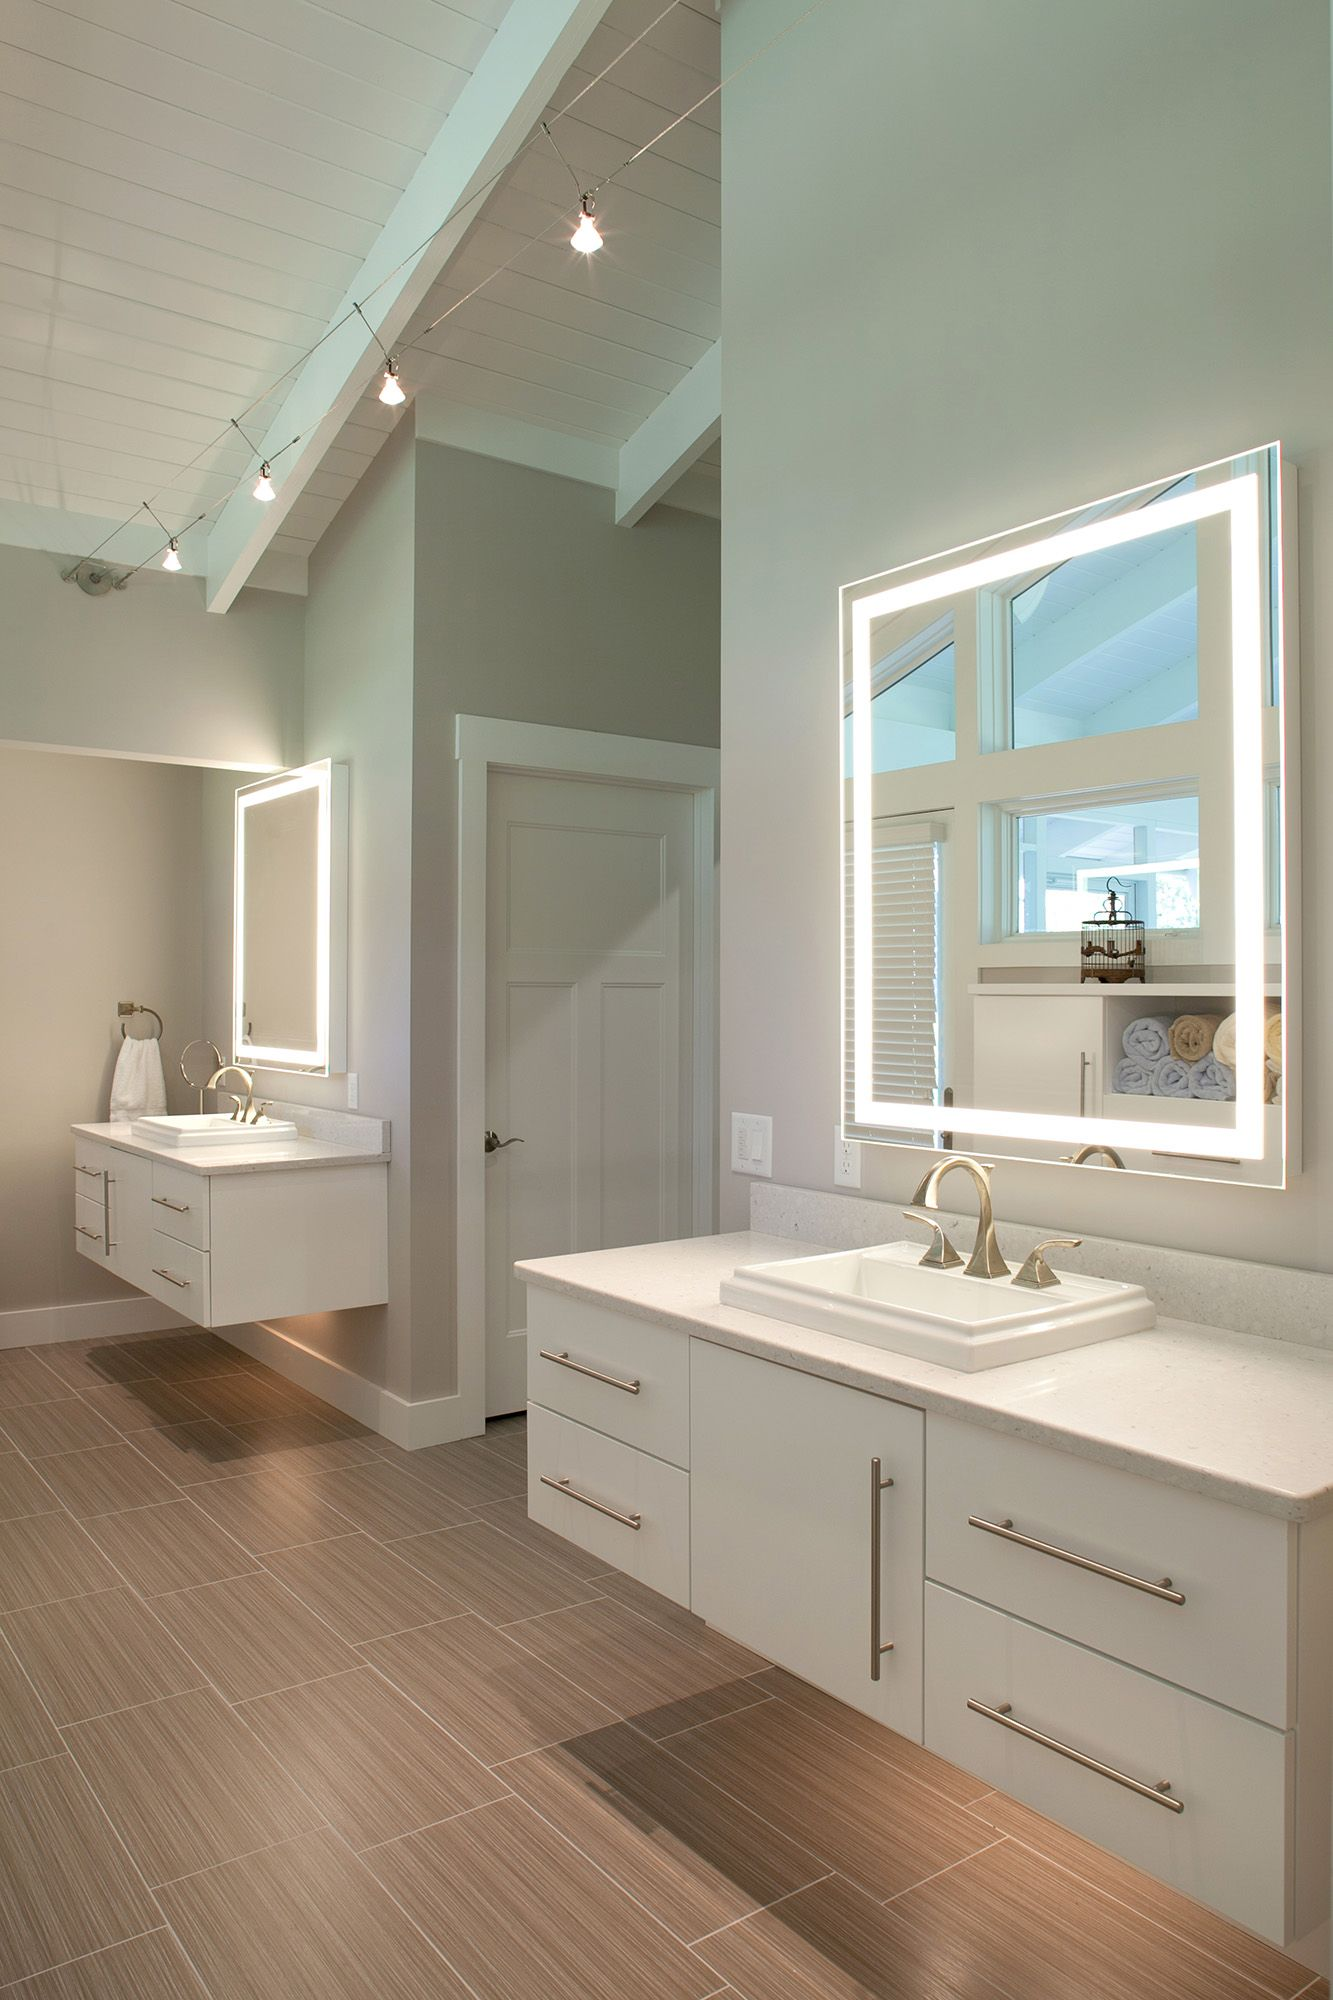 Photo of bathroom by Residential Architecture photographer in Cincinnati